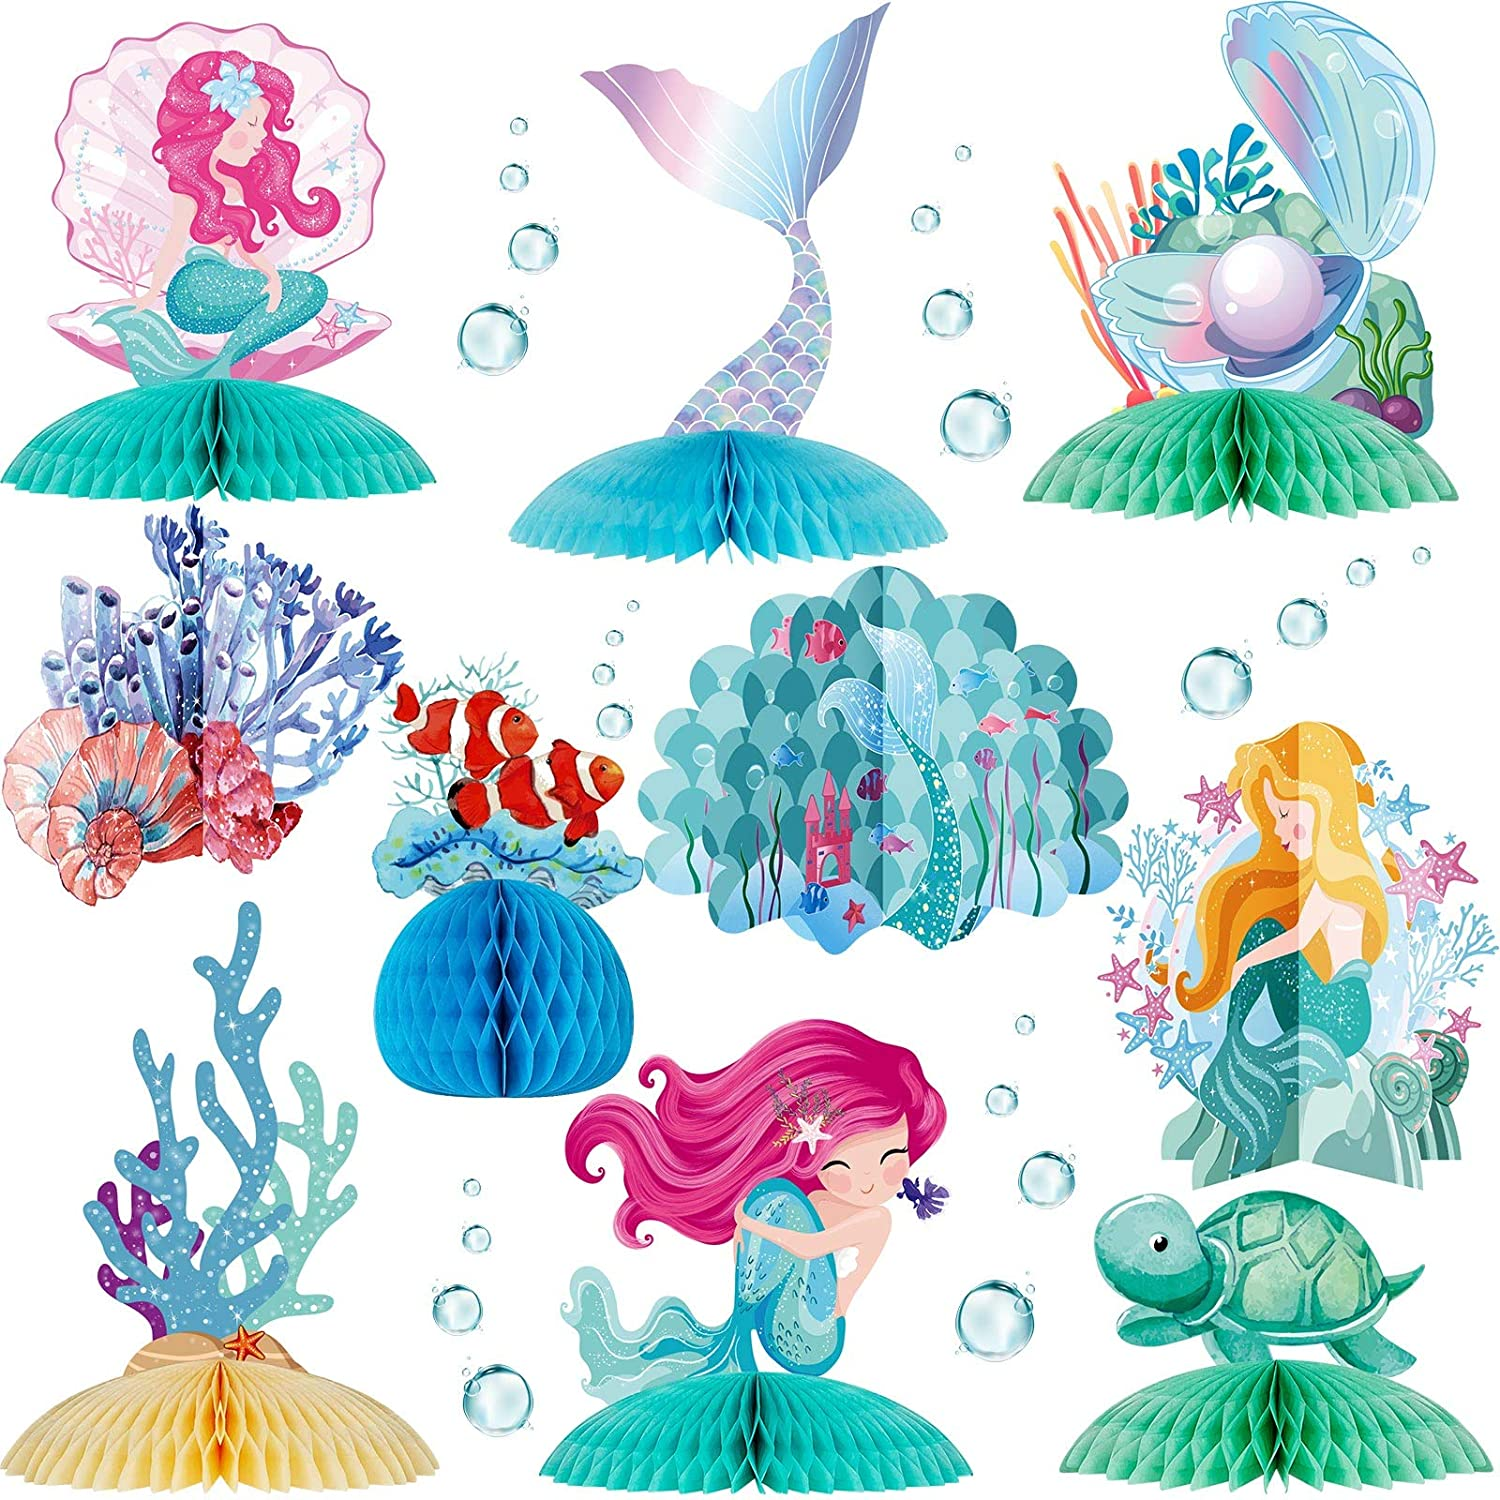 Skylety 10 Pieces Mermaid Centerpiece Mermaid Shaped Honeycomb Under The Sea Centerpiece Ocean Table Topper Mermaid Tableware Decoration for Mermaid Theme Baby Shower Birthday Wedding Party Decor